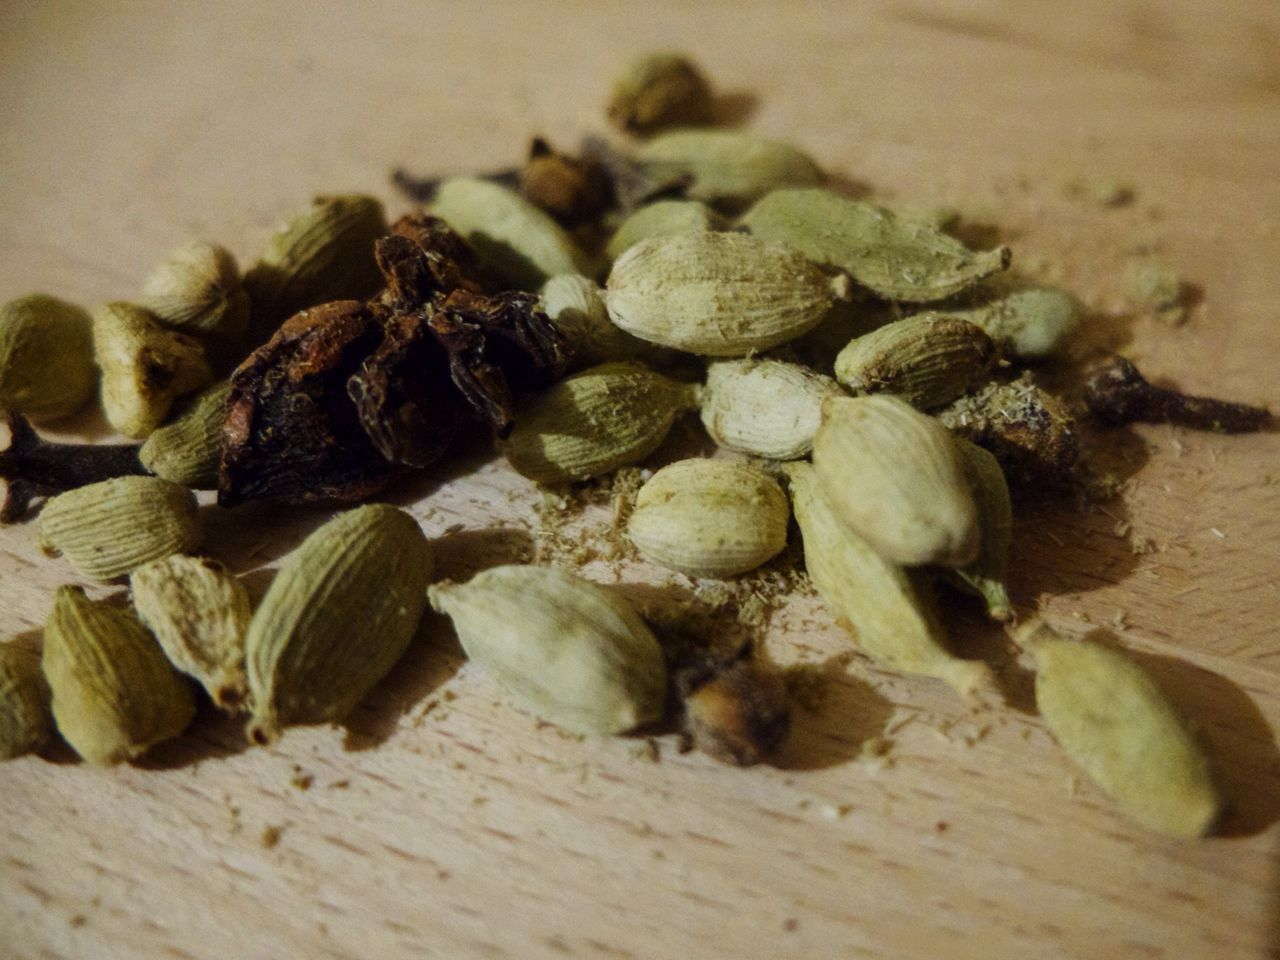 food and drink, close-up, food, still life, no people, table, indoors, selective focus, healthy eating, nut, freshness, wellbeing, wood - material, ingredient, spice, seed, large group of objects, dried food, dry, nut - food, cardamom